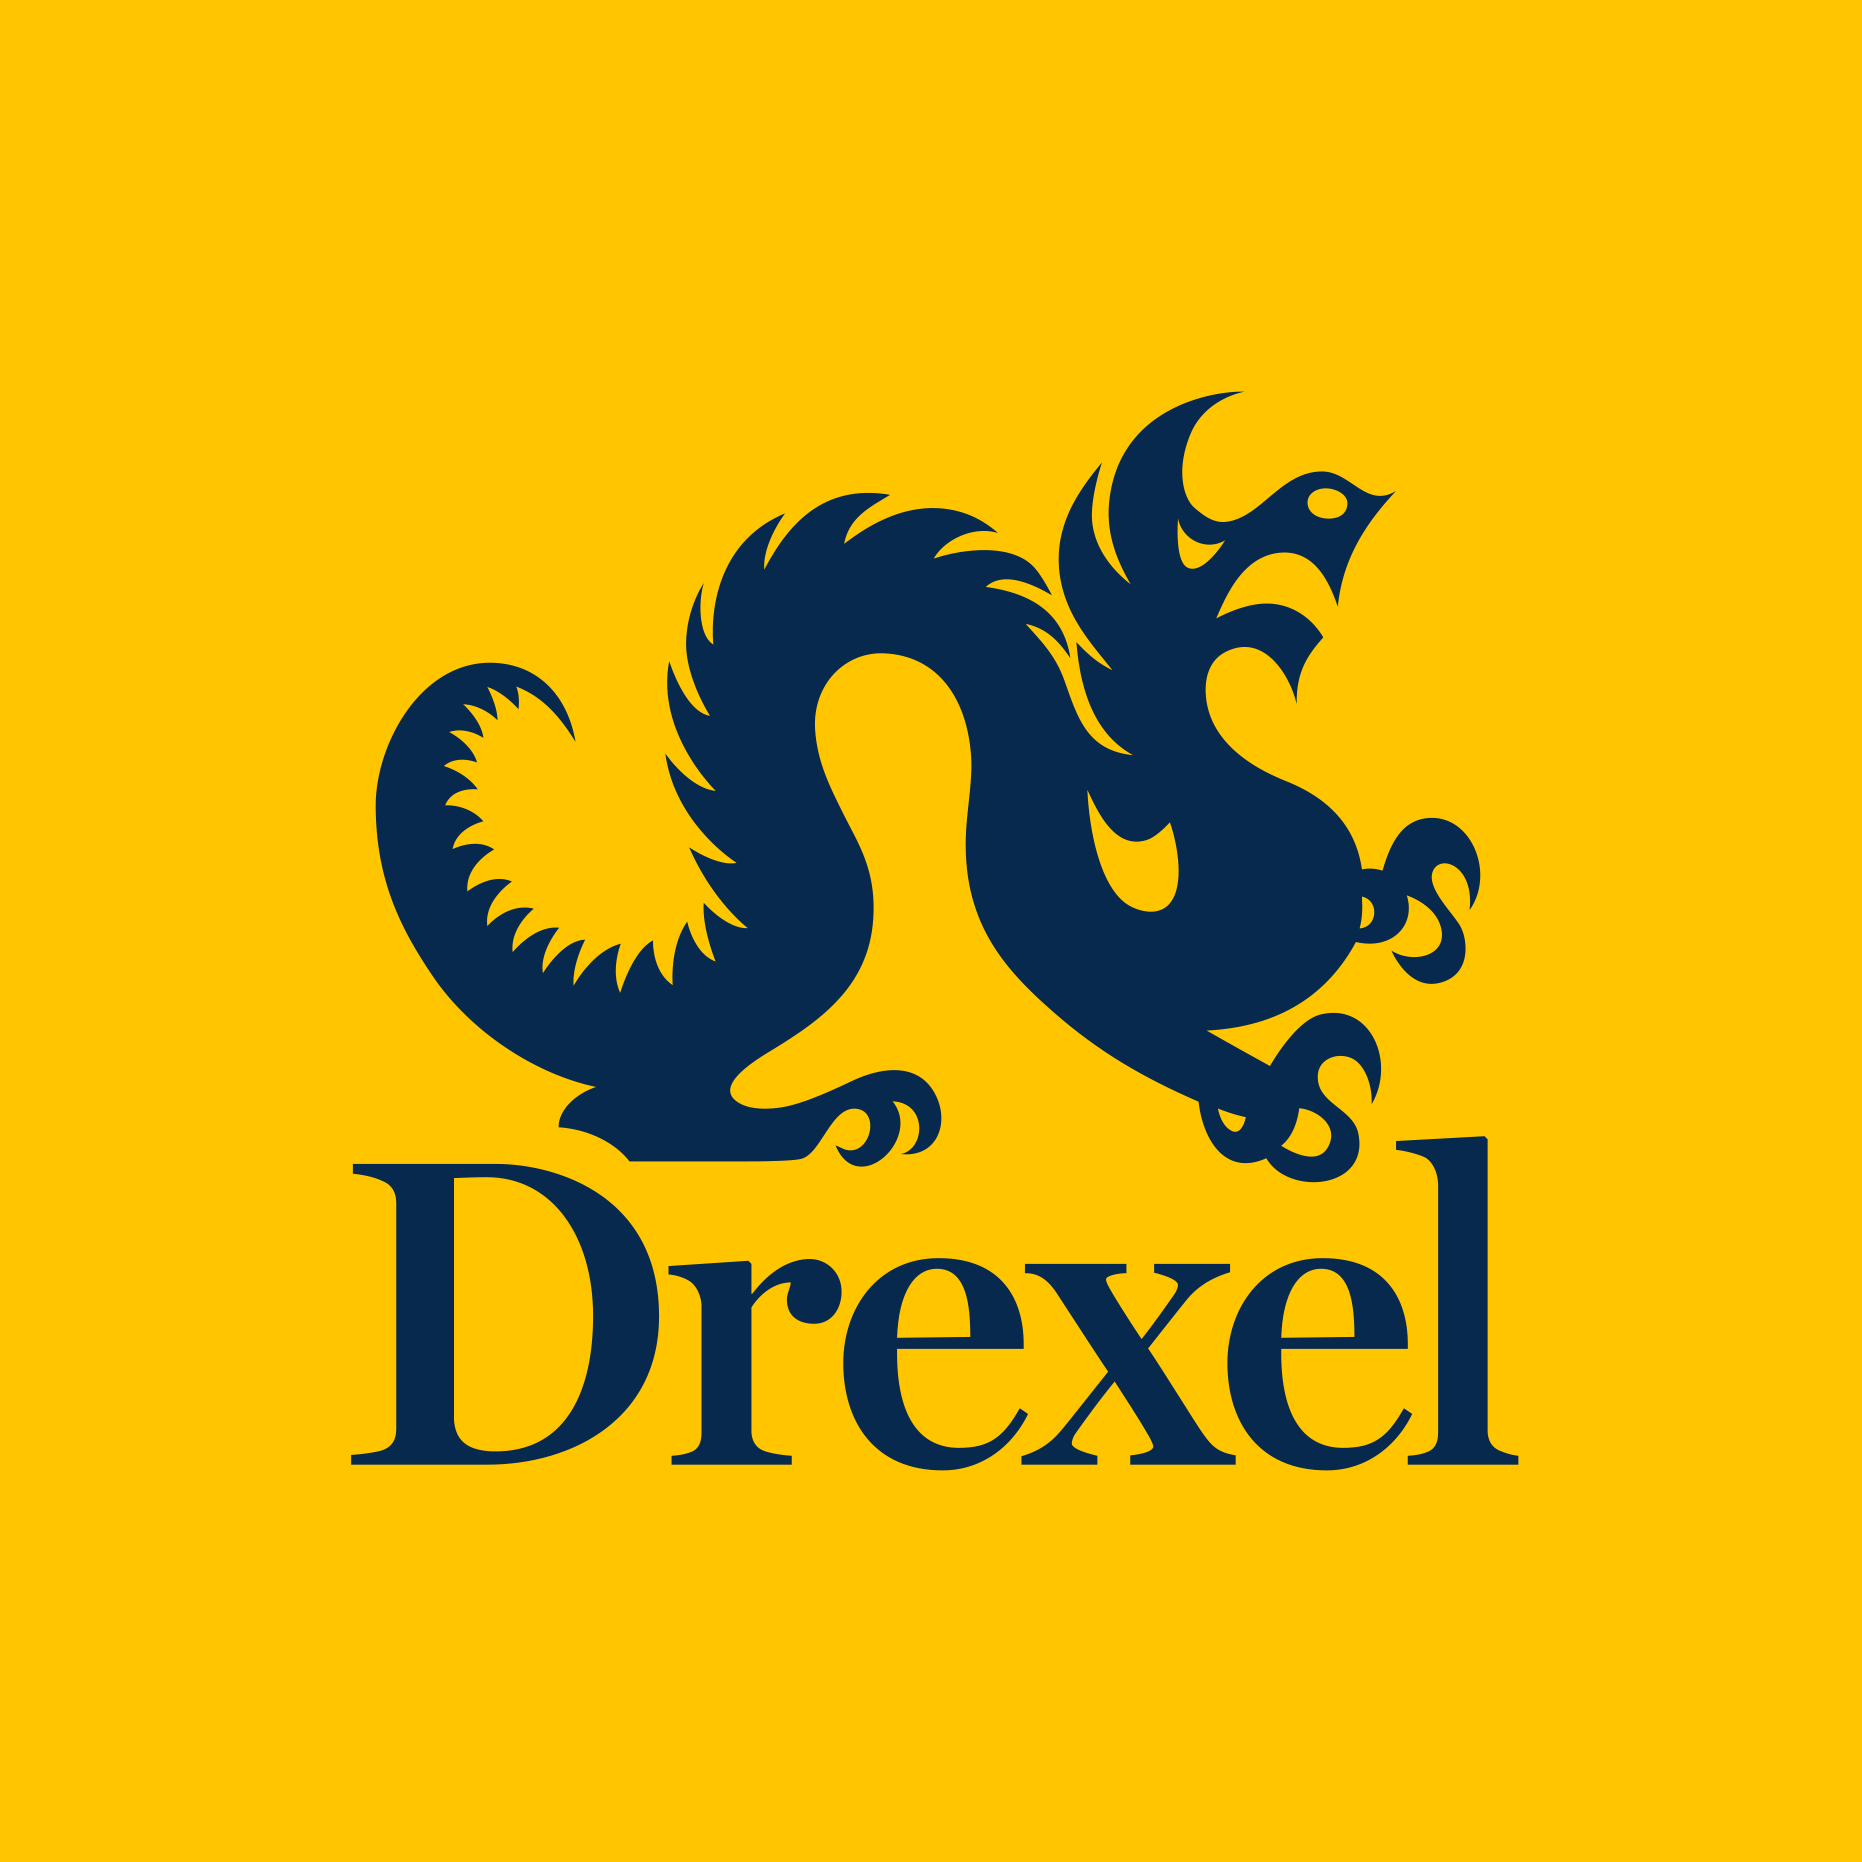 Drexel logo for twitter - yellow background